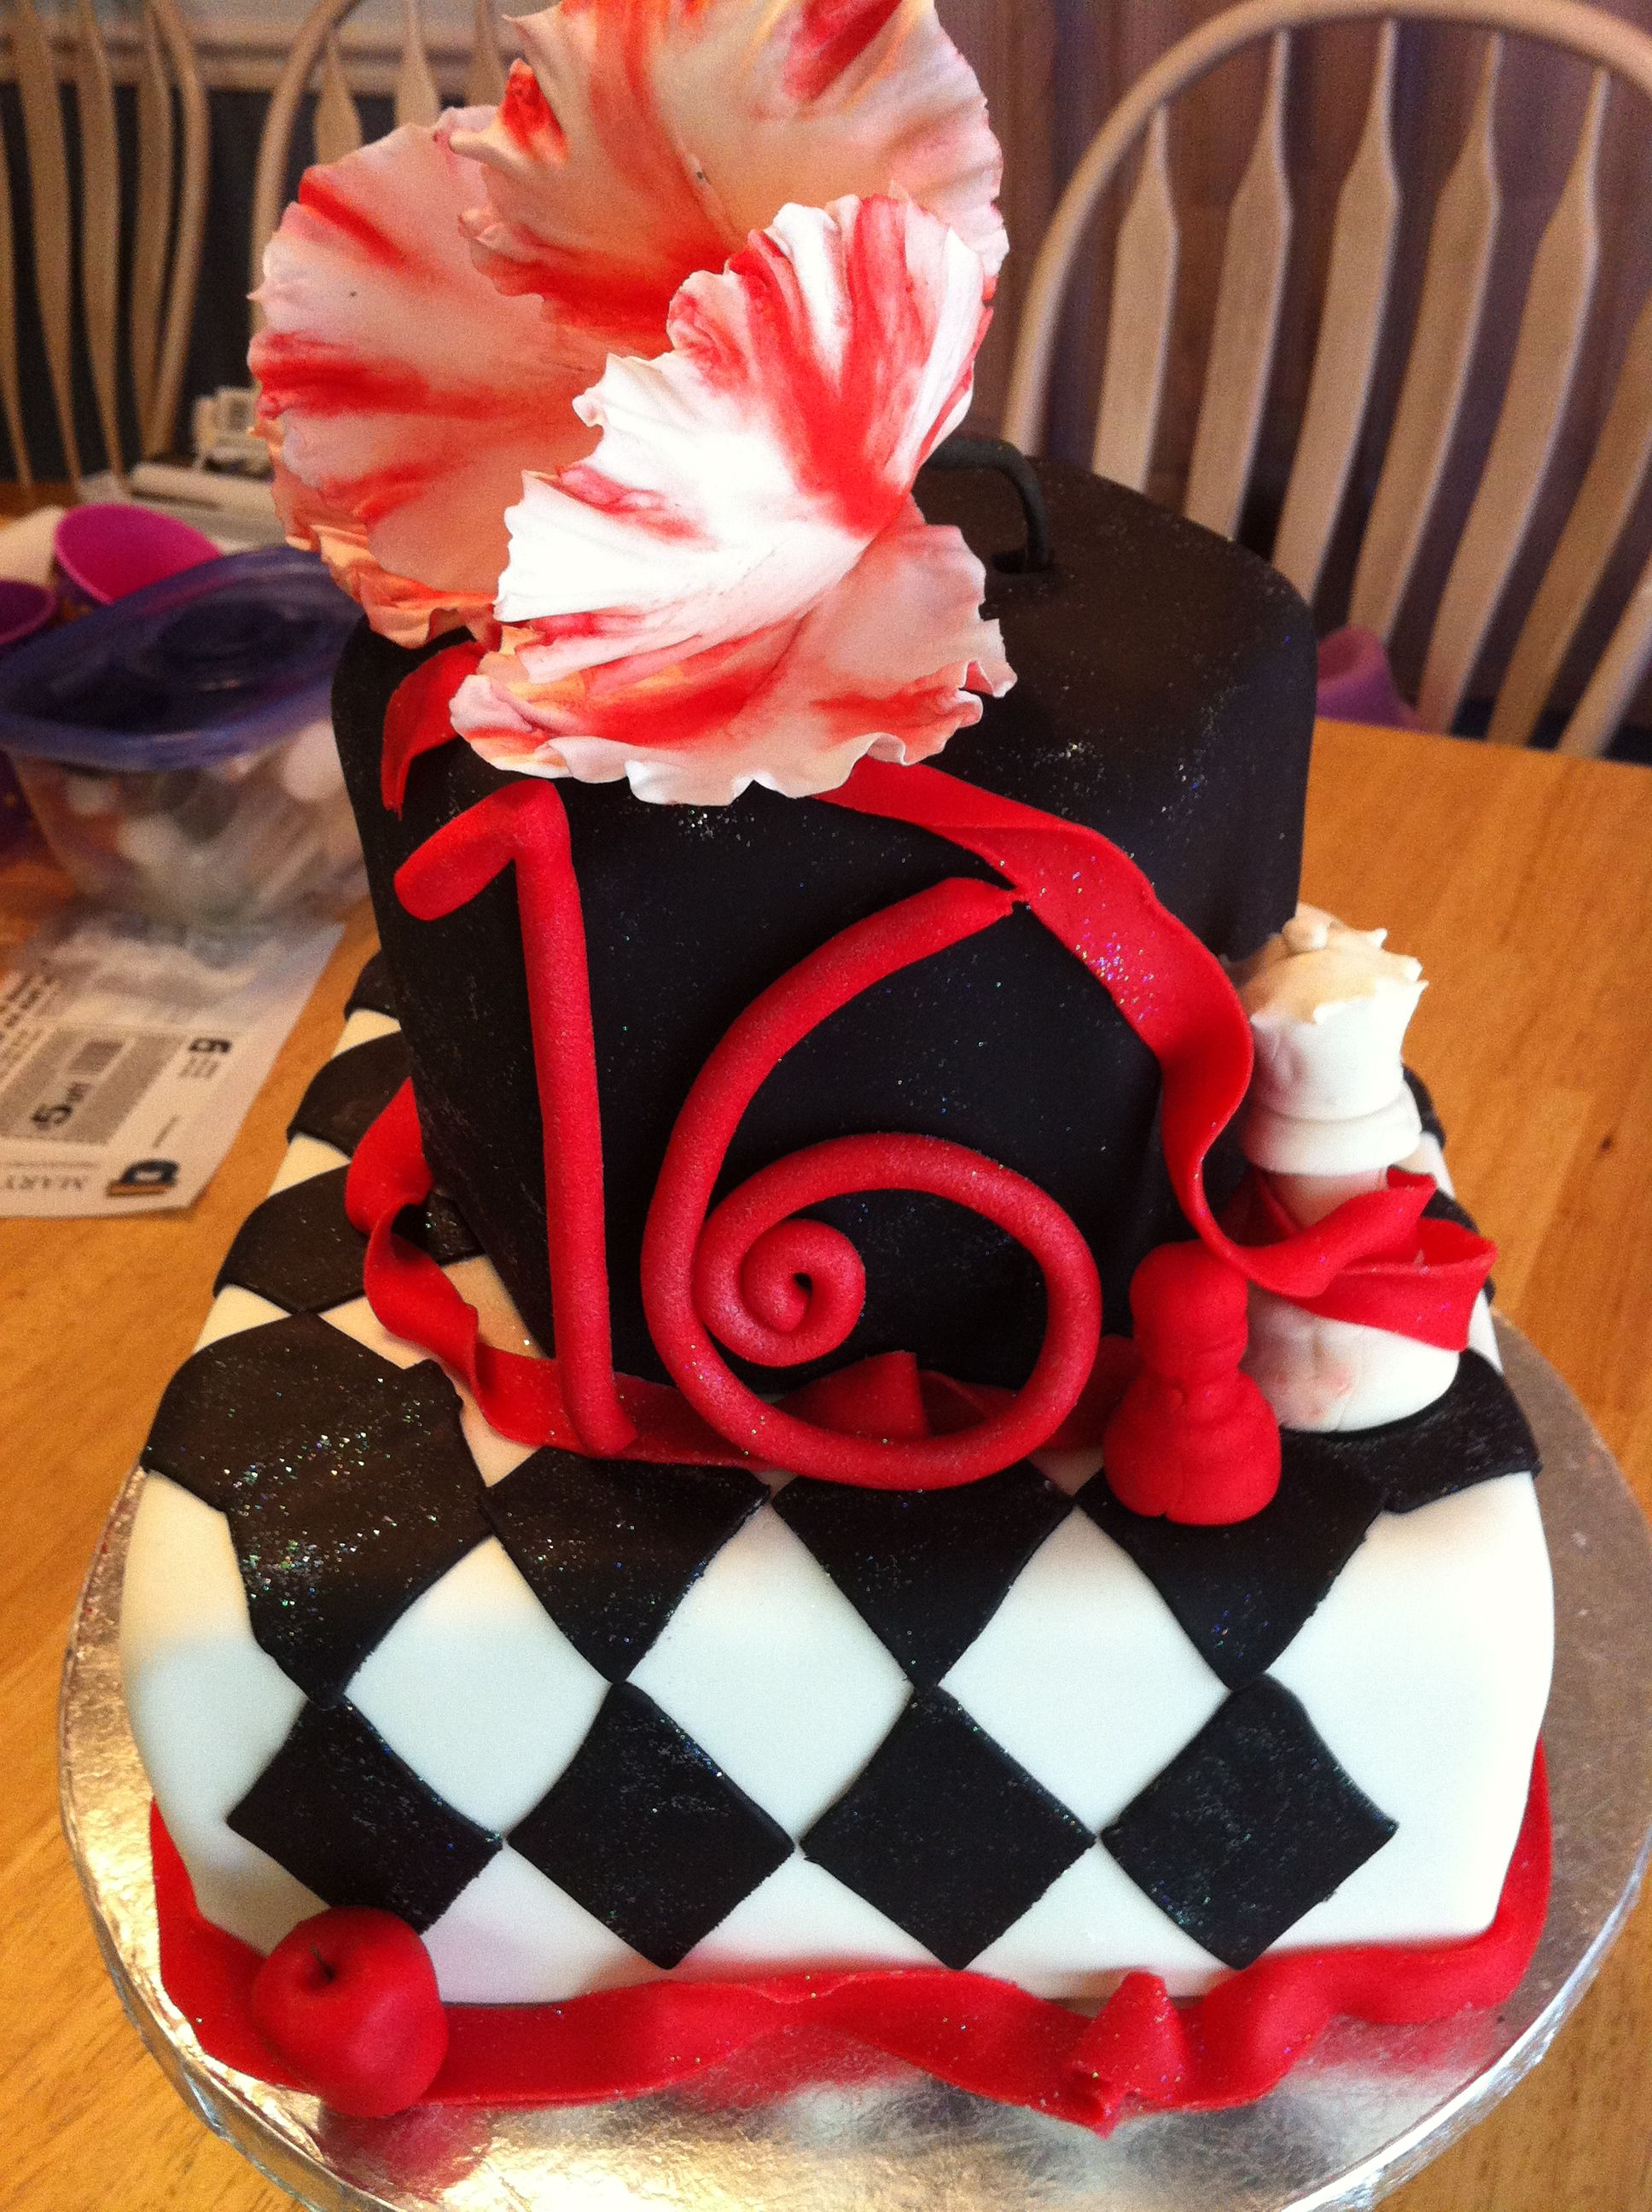 Twilight 16th Birthday Cake